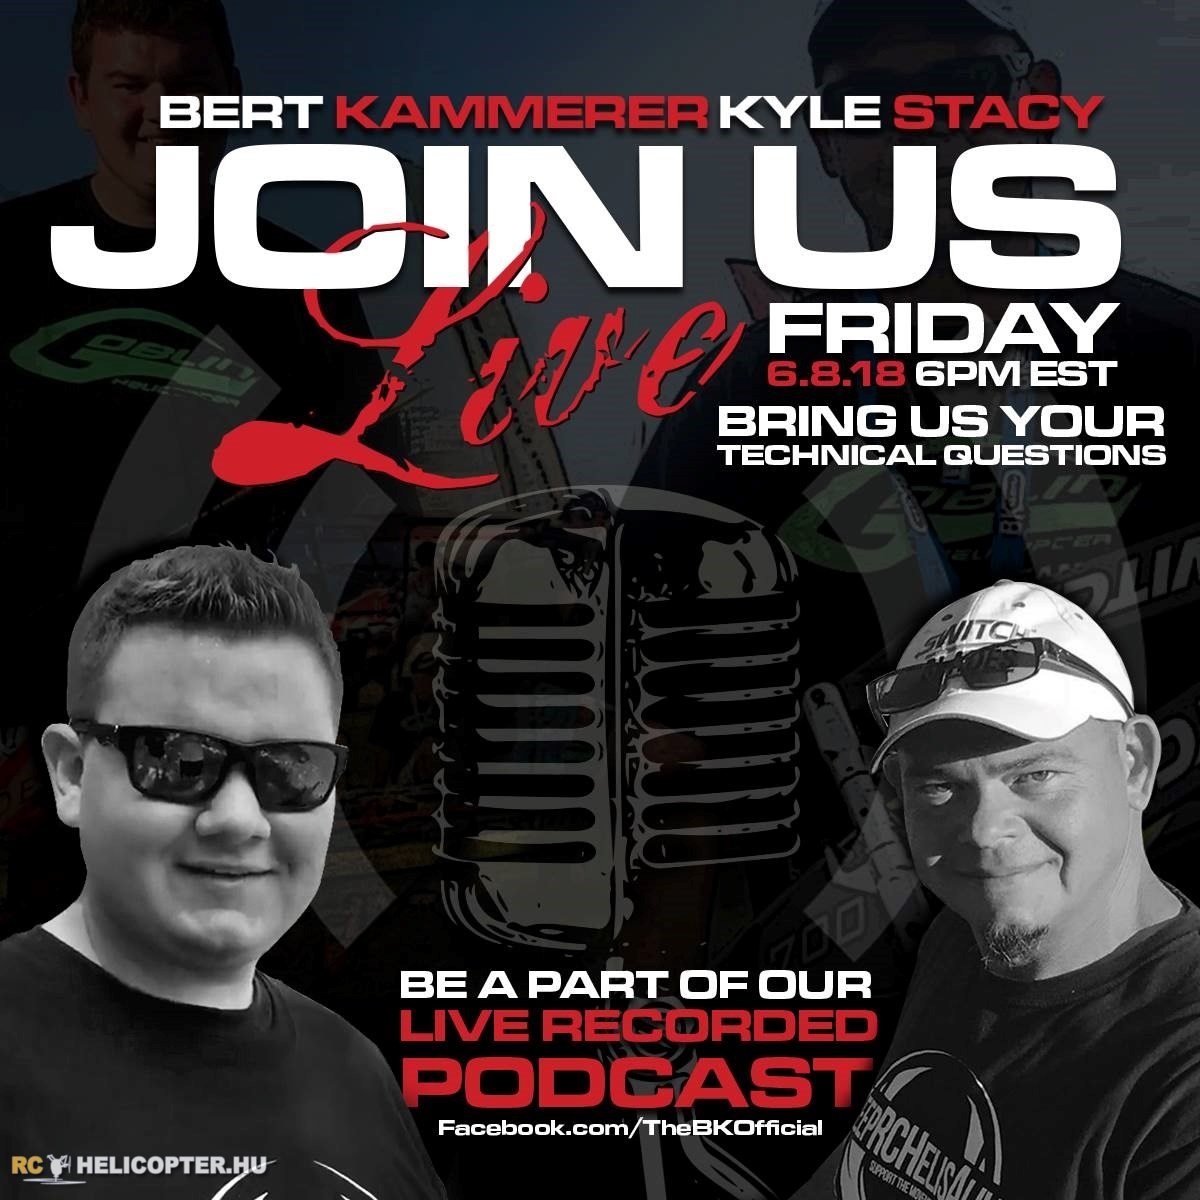 bert ammerer and kyle stacy podcast.jpg